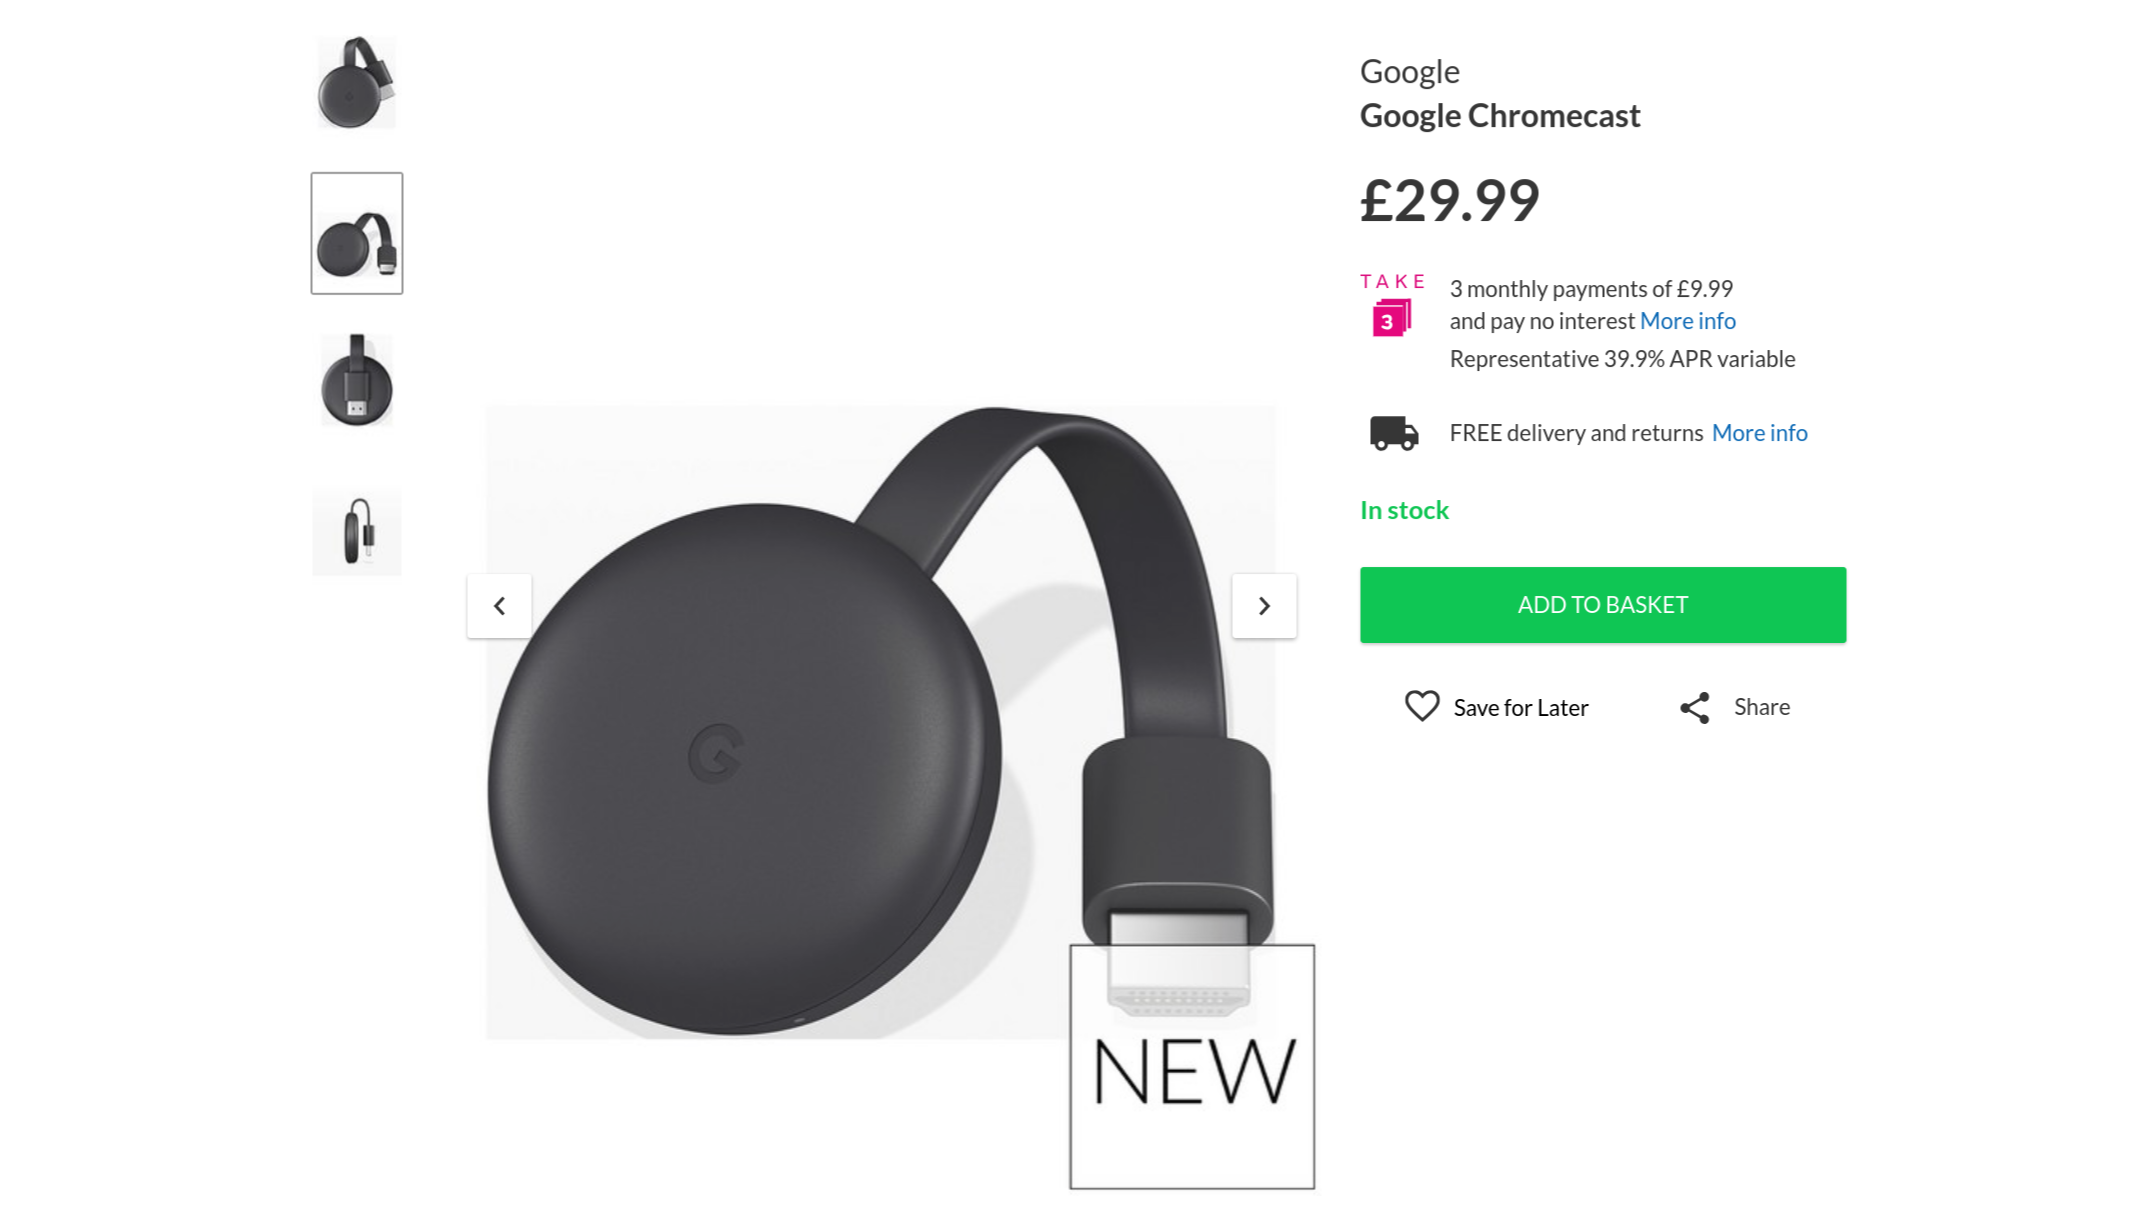 Chromecast is available in the UK before its official announcement